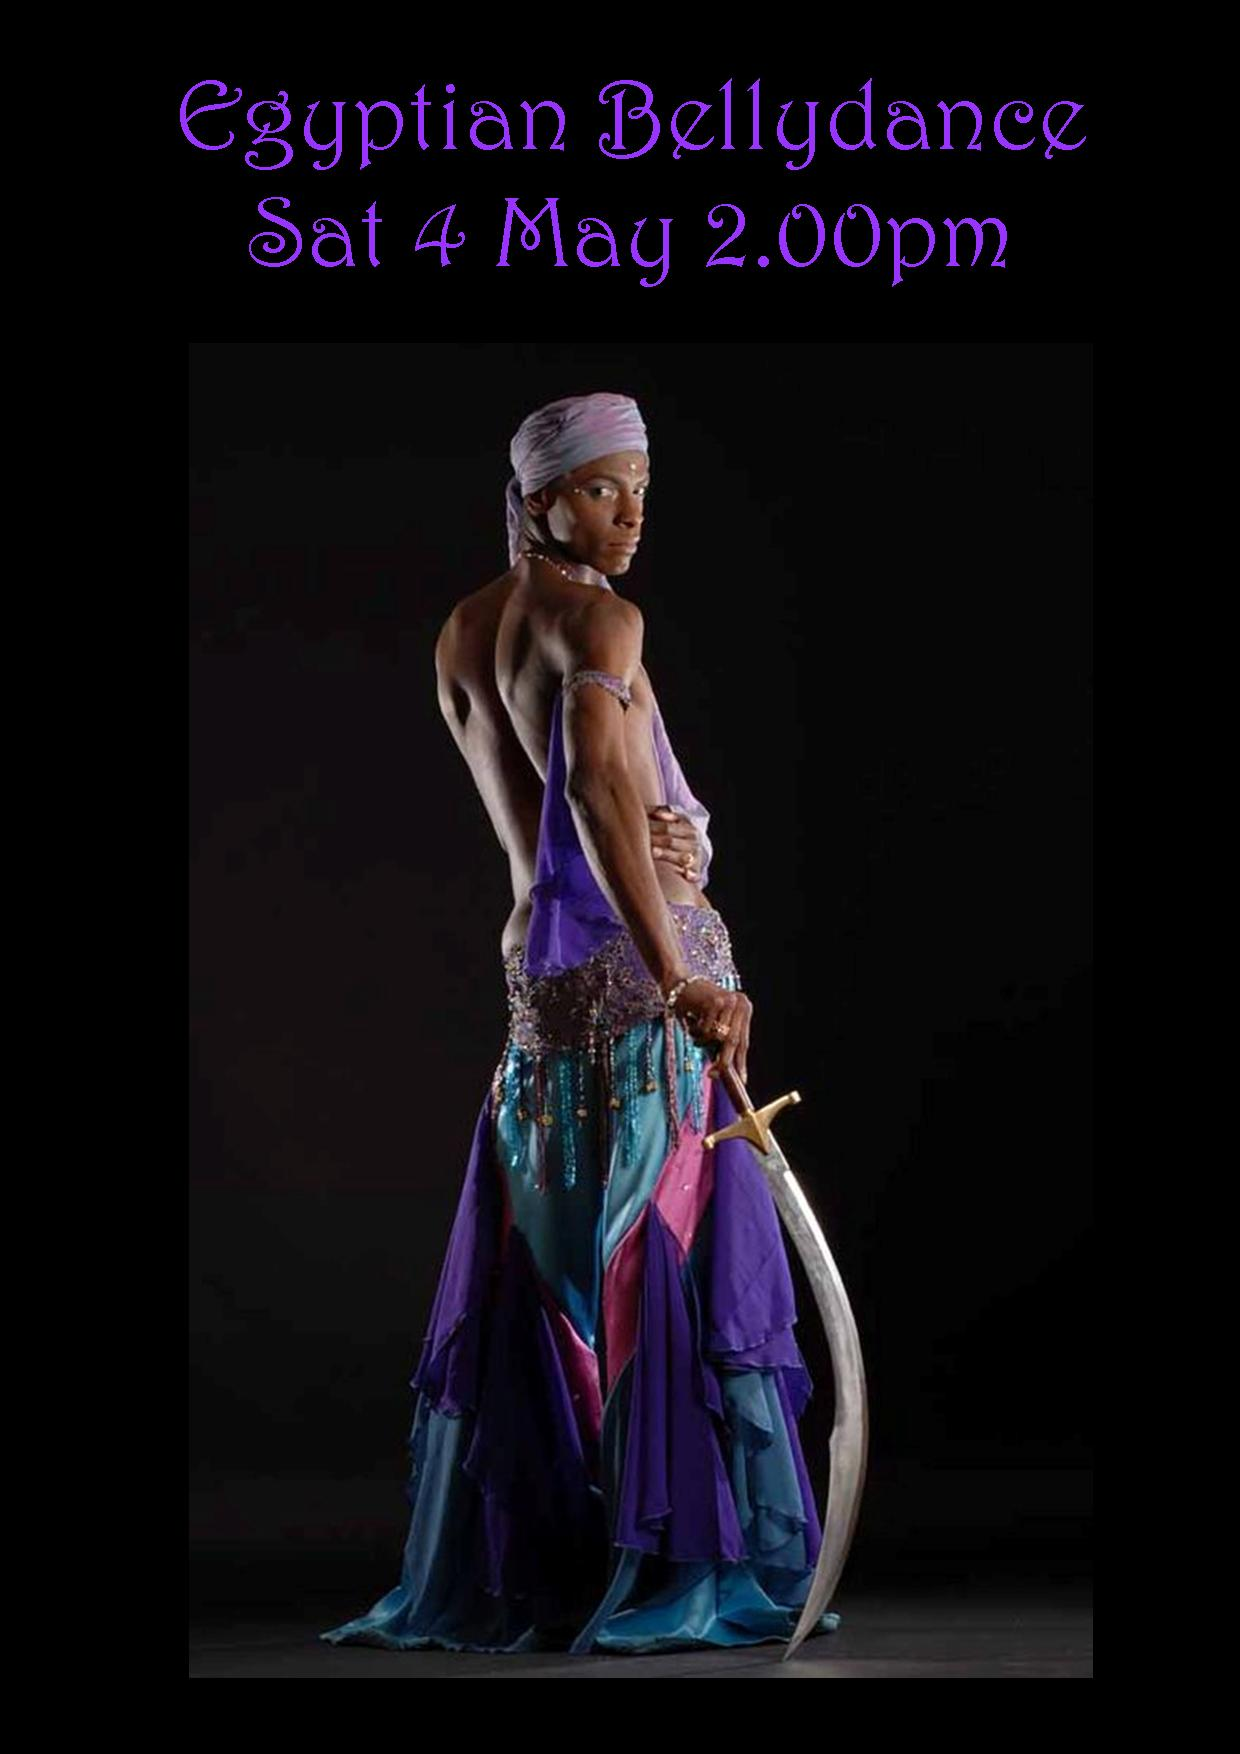 EGYPTIAN BELLYDANCE SAT 4 MAY 2.00PM